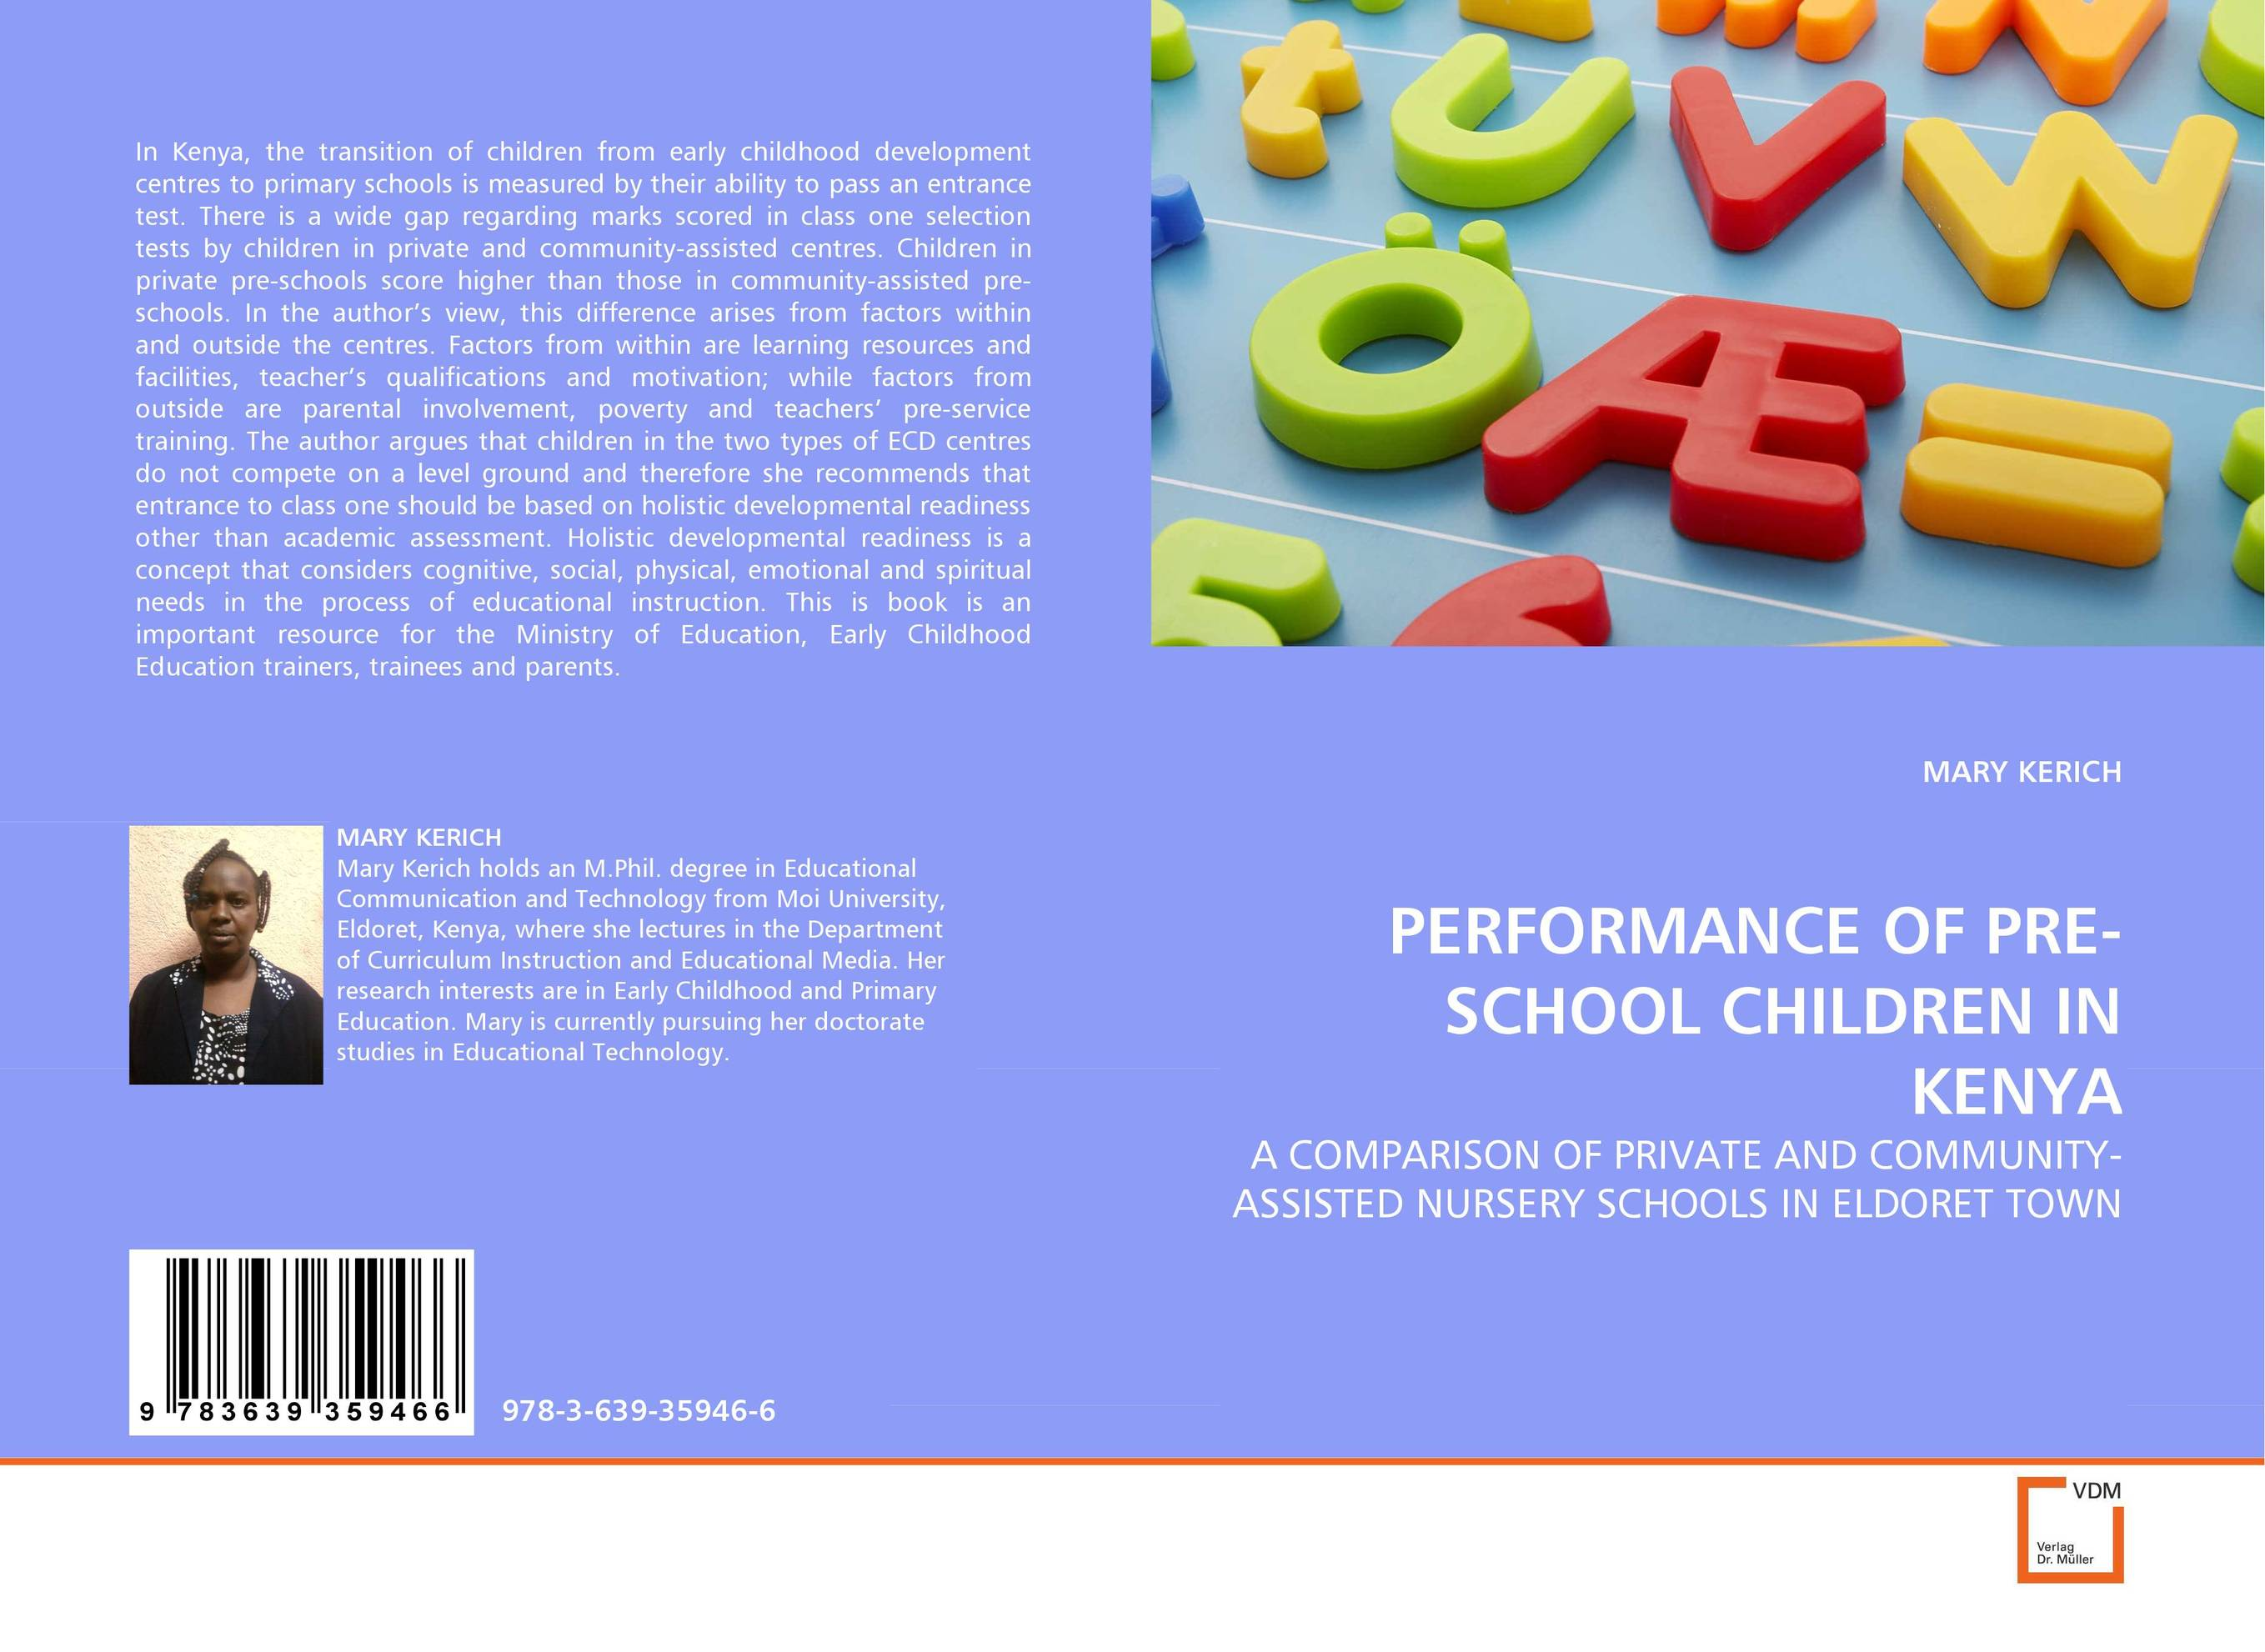 PERFORMANCE OF PRE-SCHOOL CHILDREN IN KENYA florence kisirkoi learning needs of street children in kenya